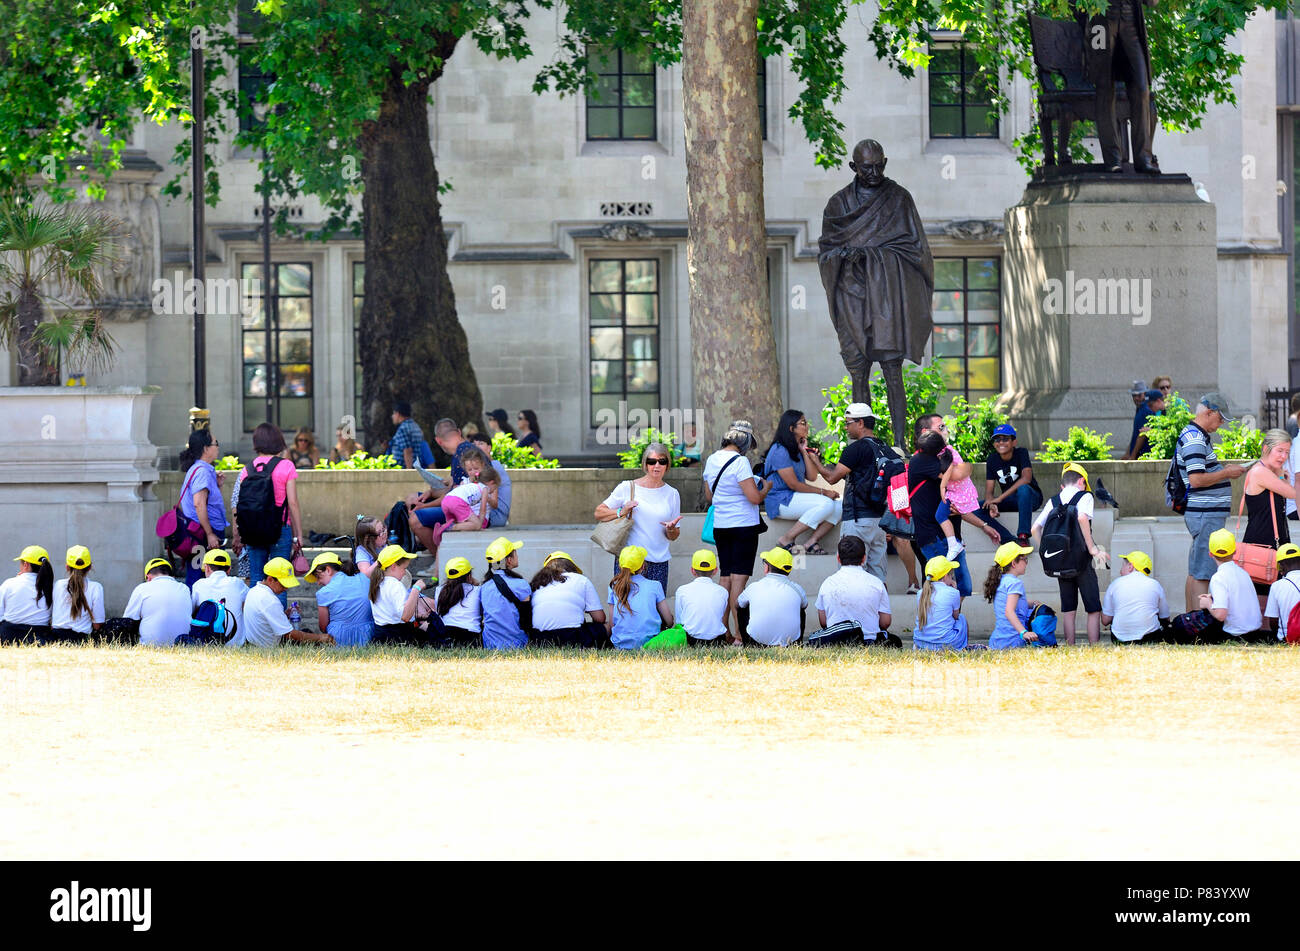 Primary schoolchildren on a school trip in Parliament Square, during a period of hot, dry, weather. London, England, UK. - Stock Image